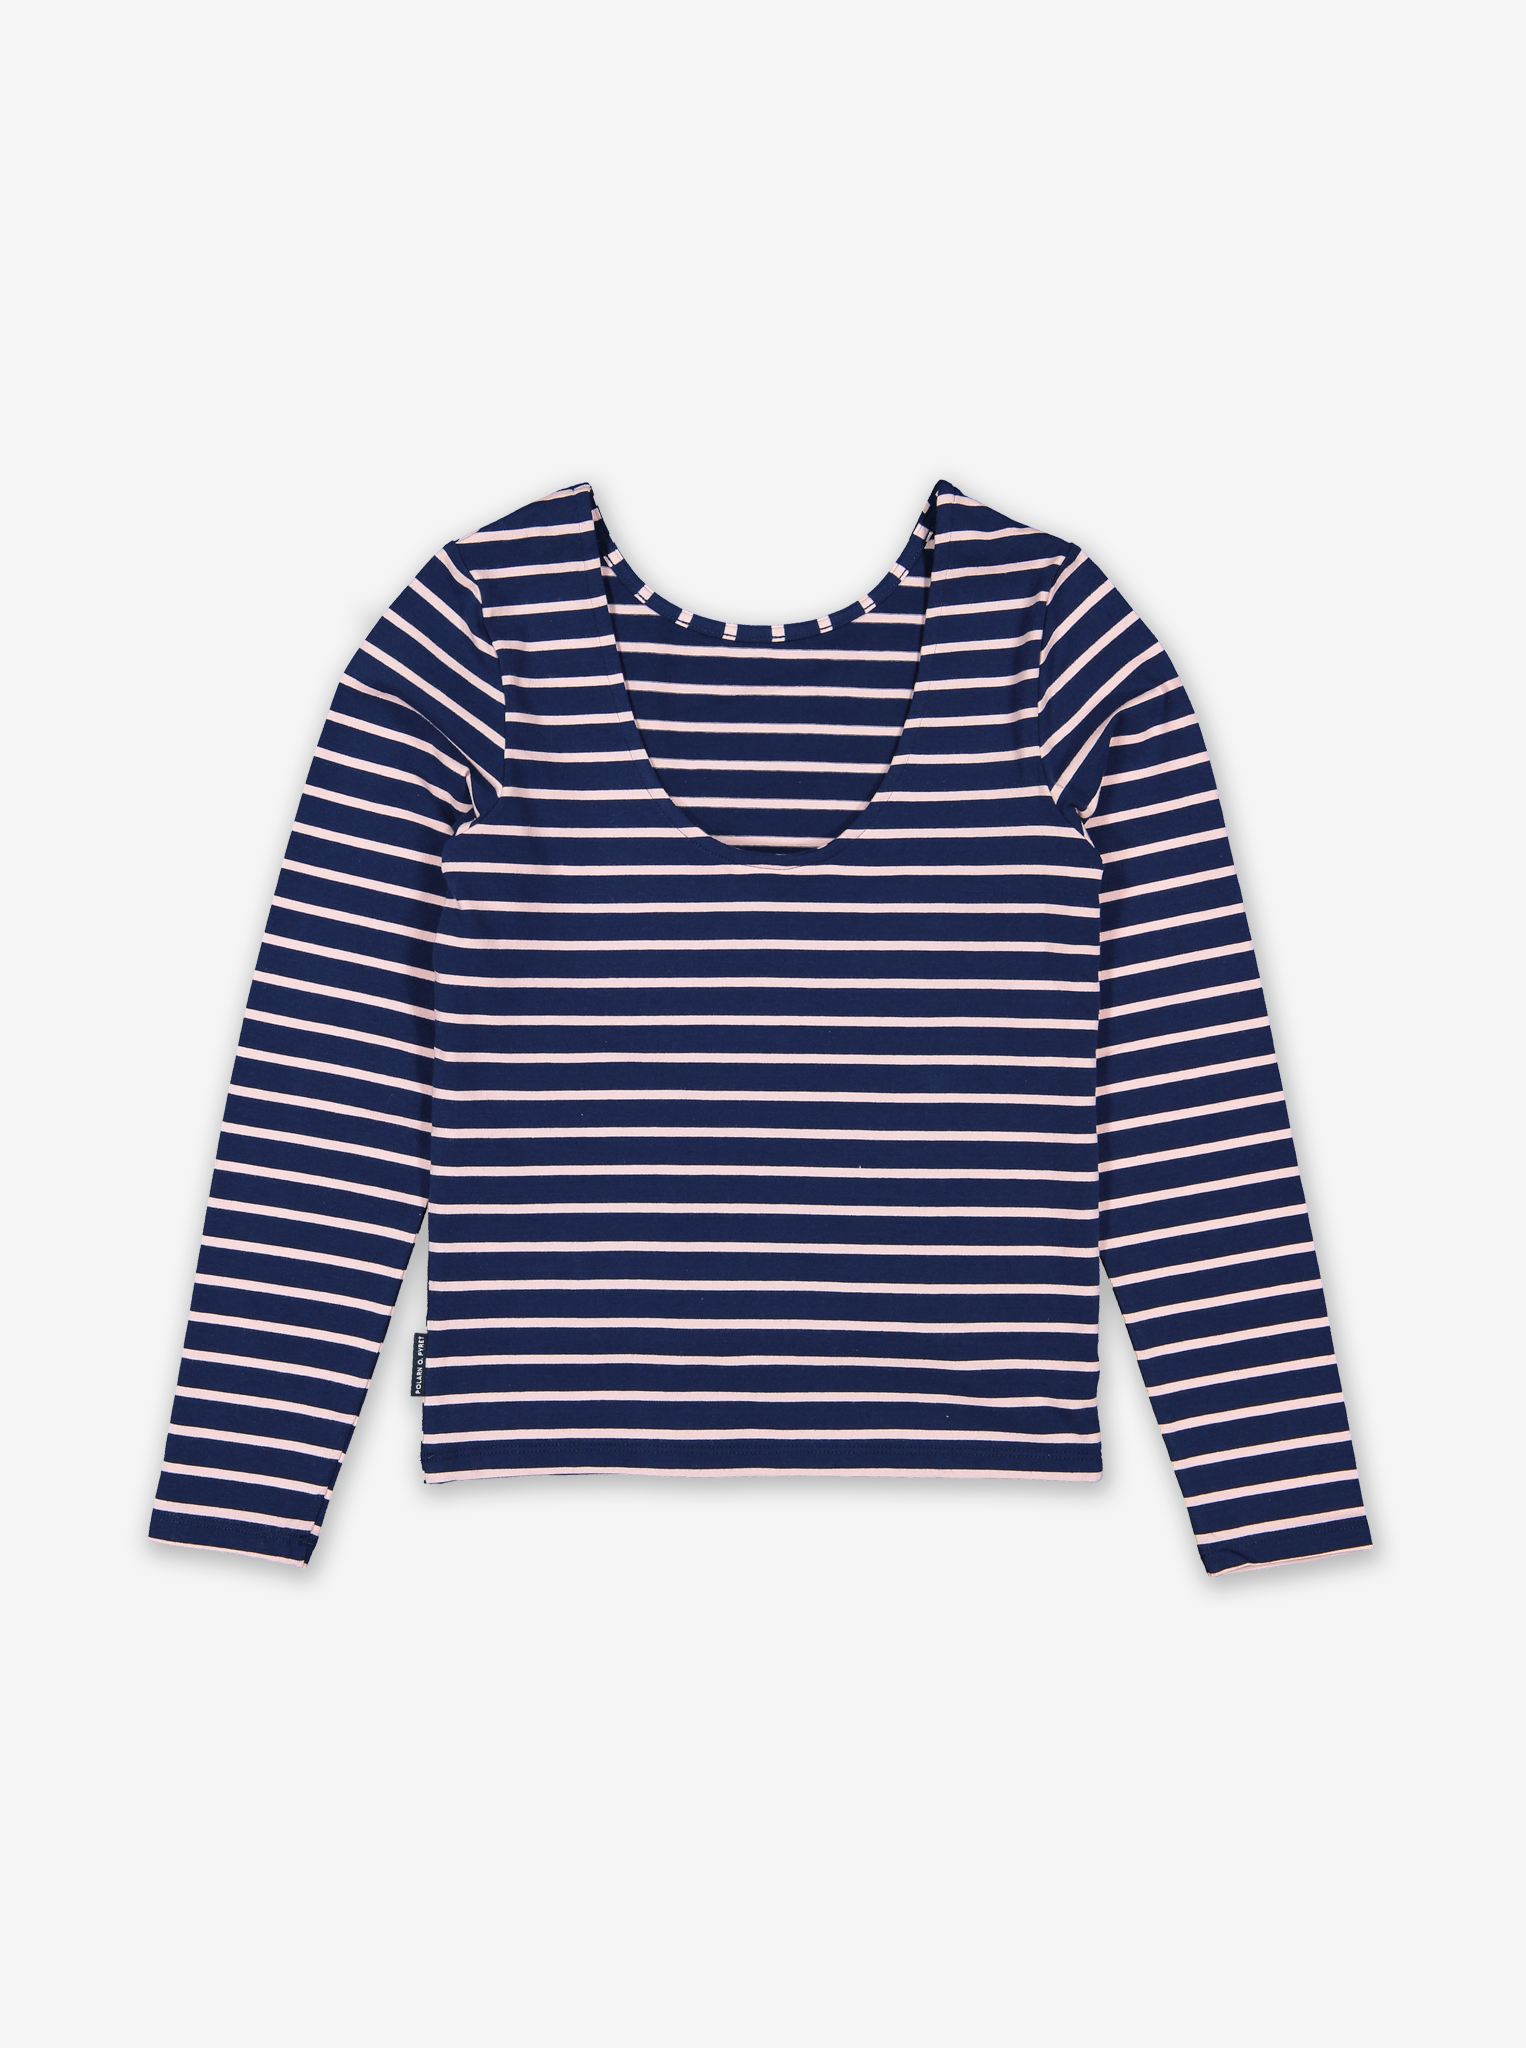 Striped Kids Tie Top-Girl-6-12y-Blue